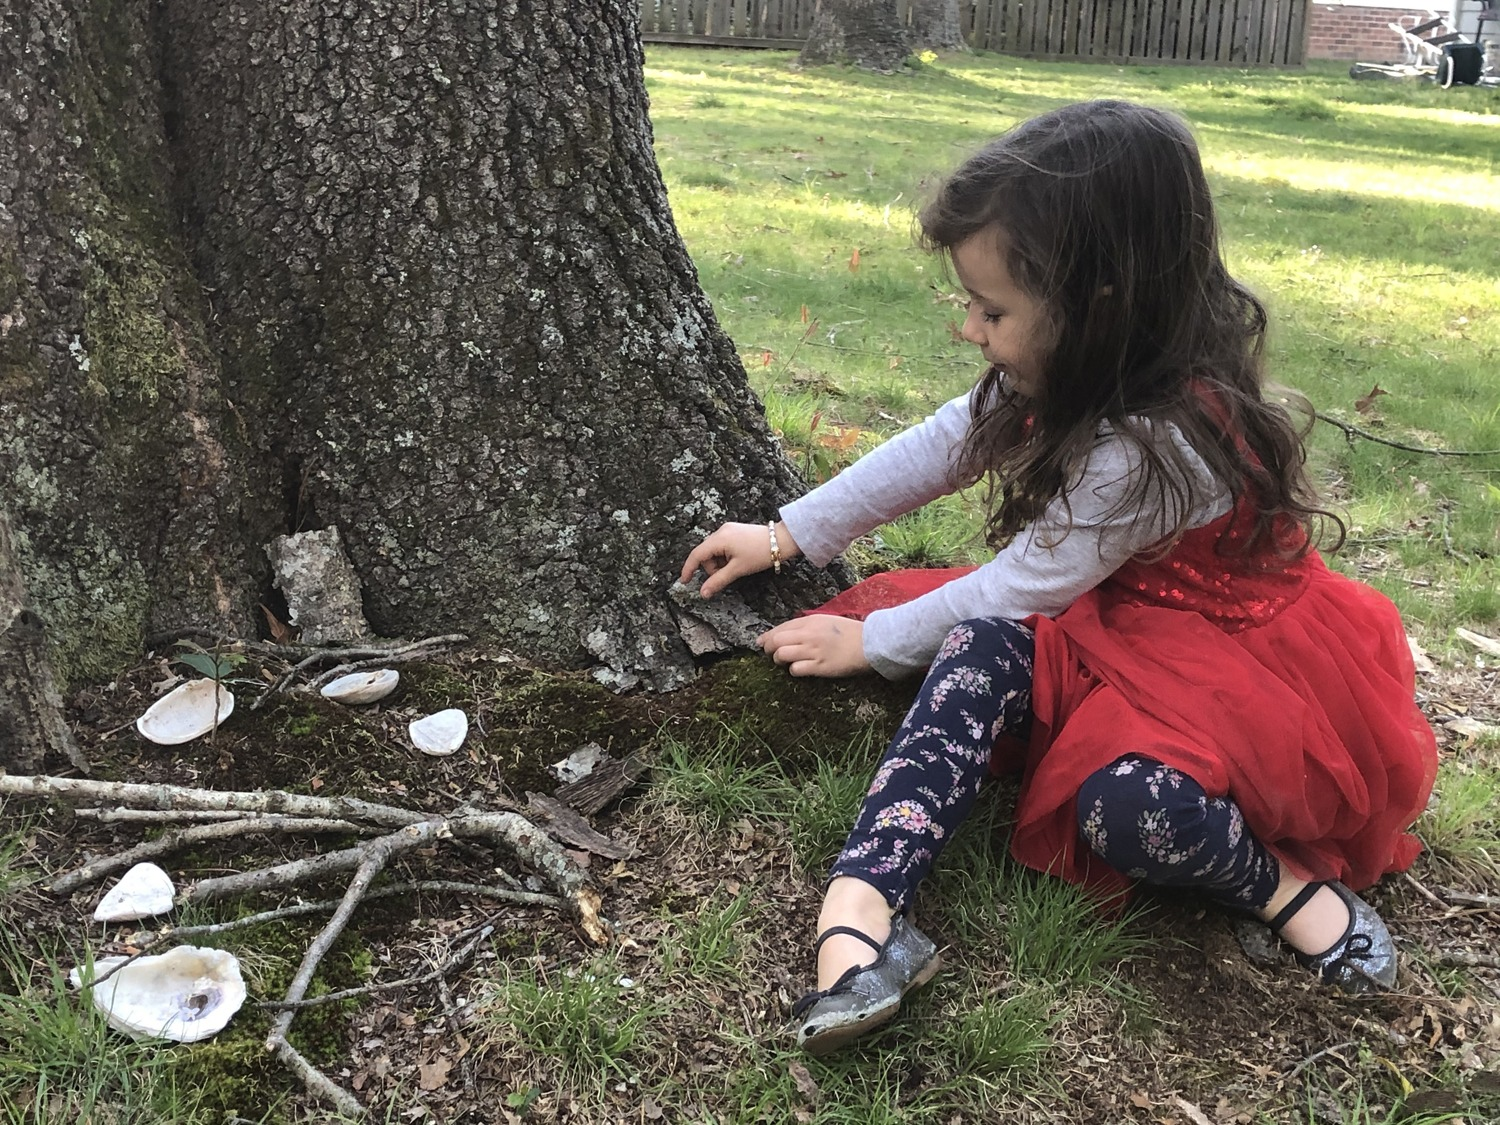 Making fairy houses in the back yard outdoor activities for kids